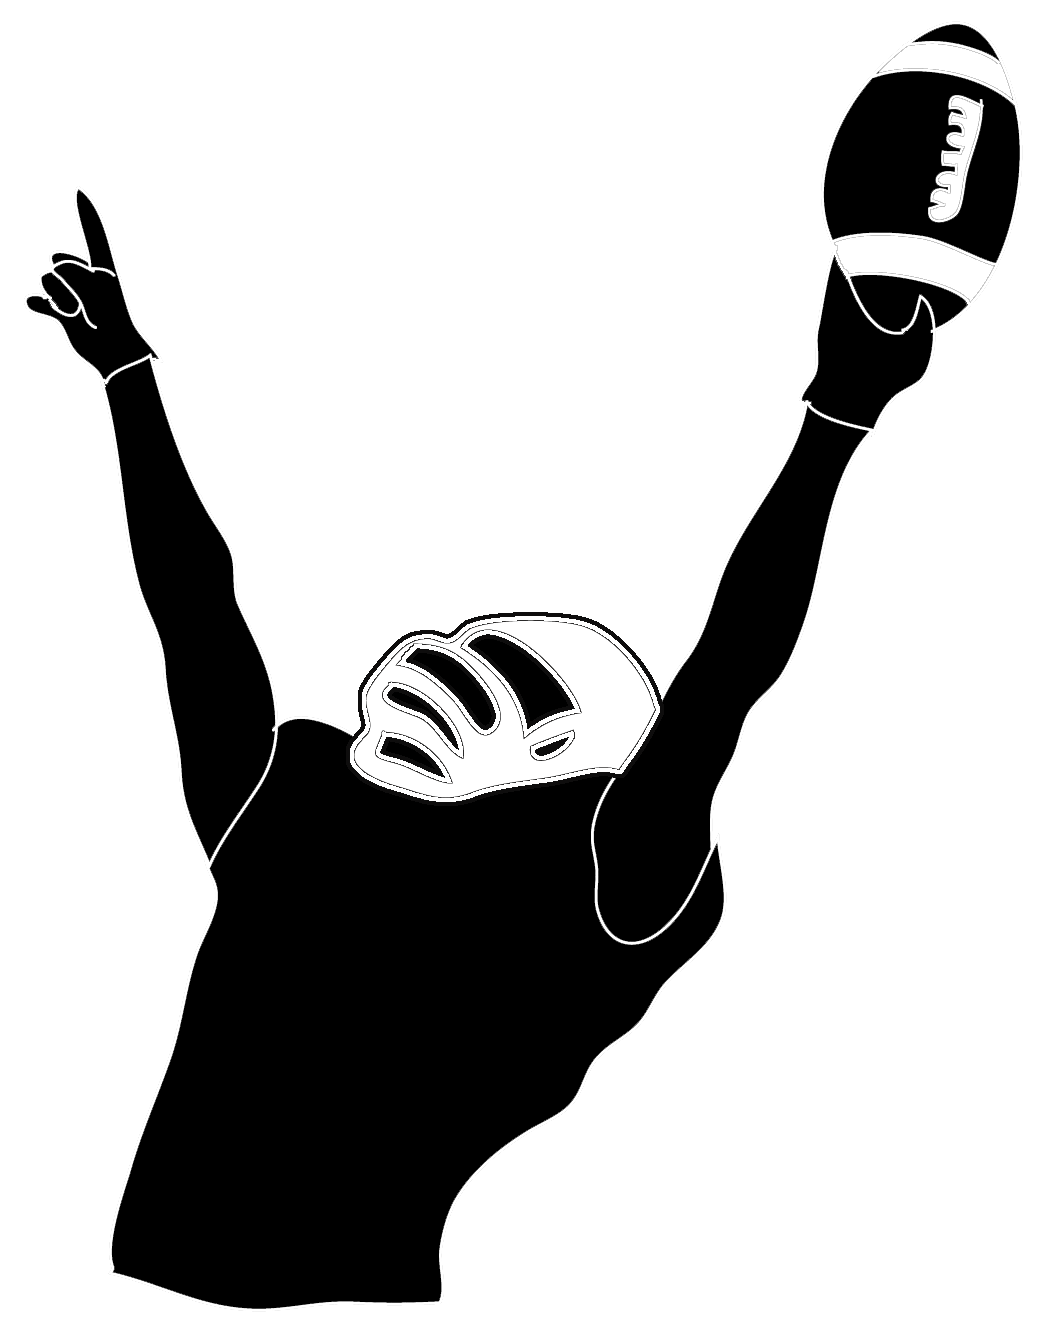 Free football player and cheerleader clipart black and white clip transparent download victory-football-player | Vinyl projects | Pinterest | Football ... clip transparent download